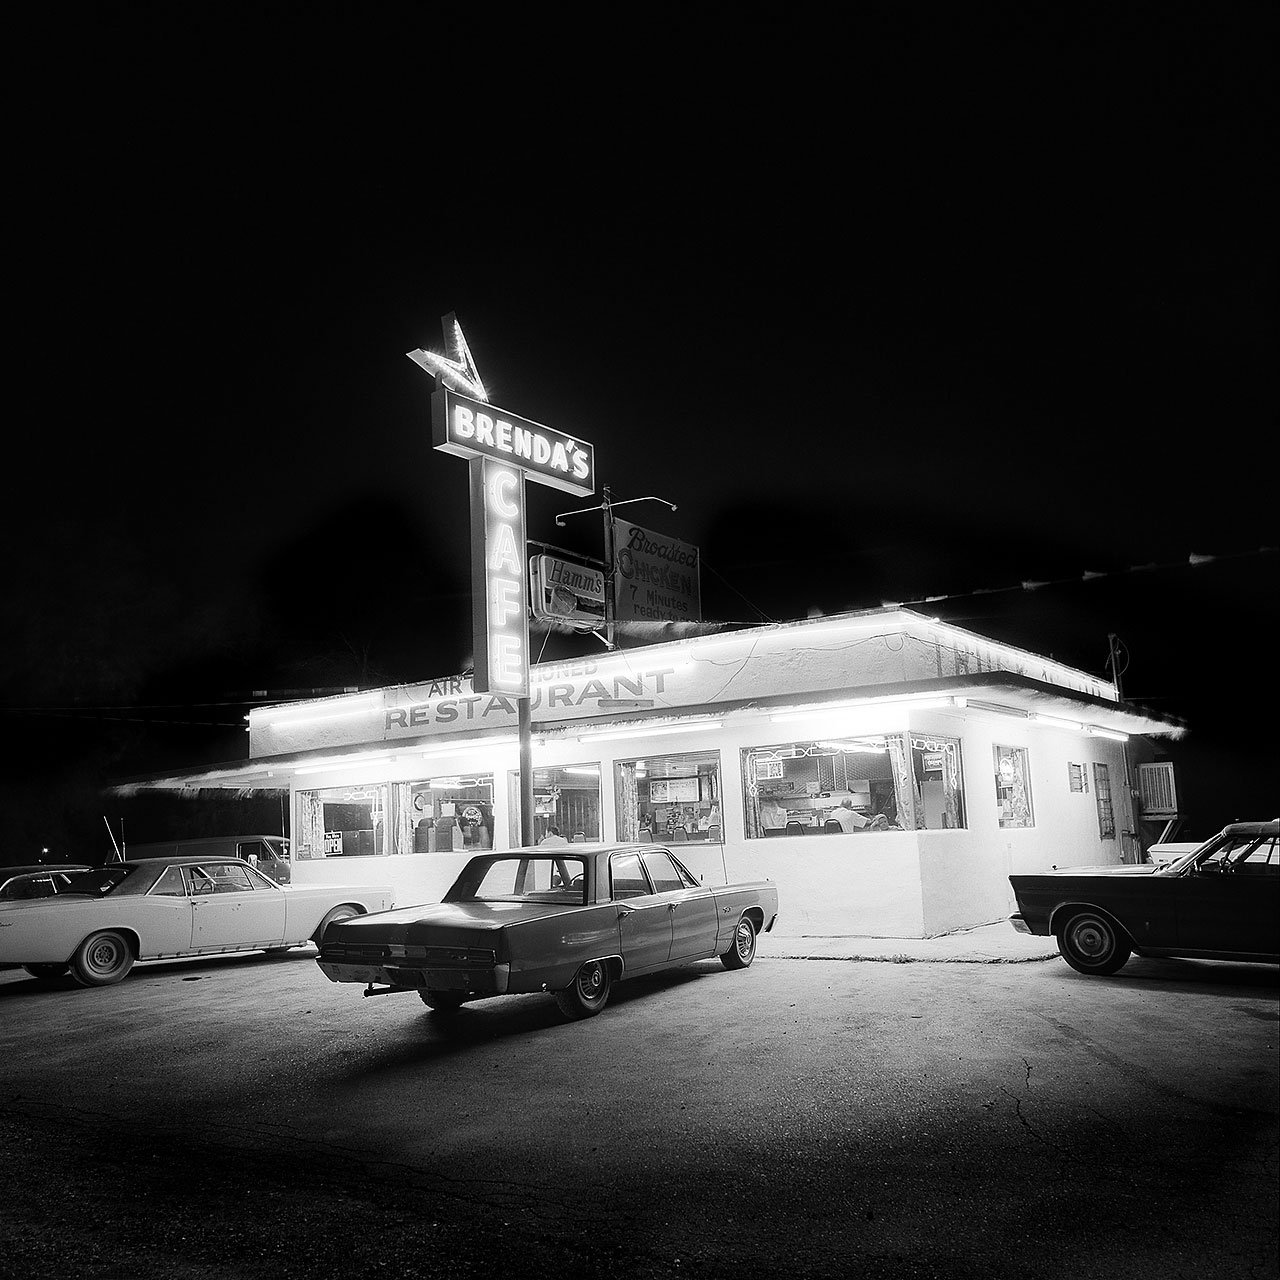 Brenda's Cafe. Lovelock, Nevada 1977